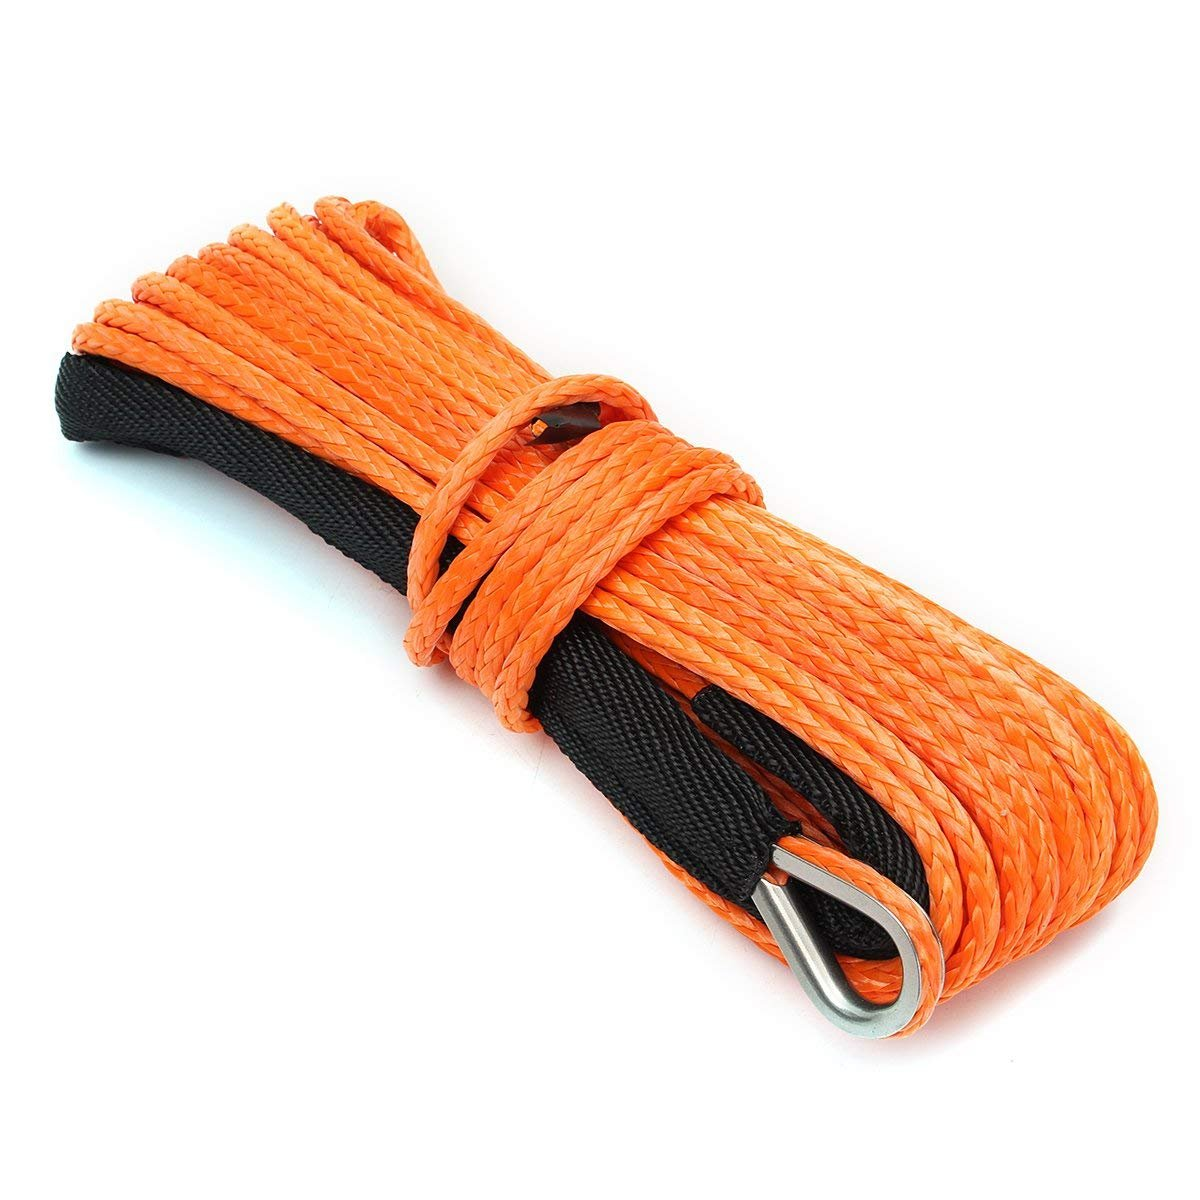 Synthetic Winch Rope ELUTO 49/'x1//4 7000+LBs Winch Rope Line Cable with Sheath Winches for Winches SUV ATV UTV Vehicle Boat Ramsey Car Orange